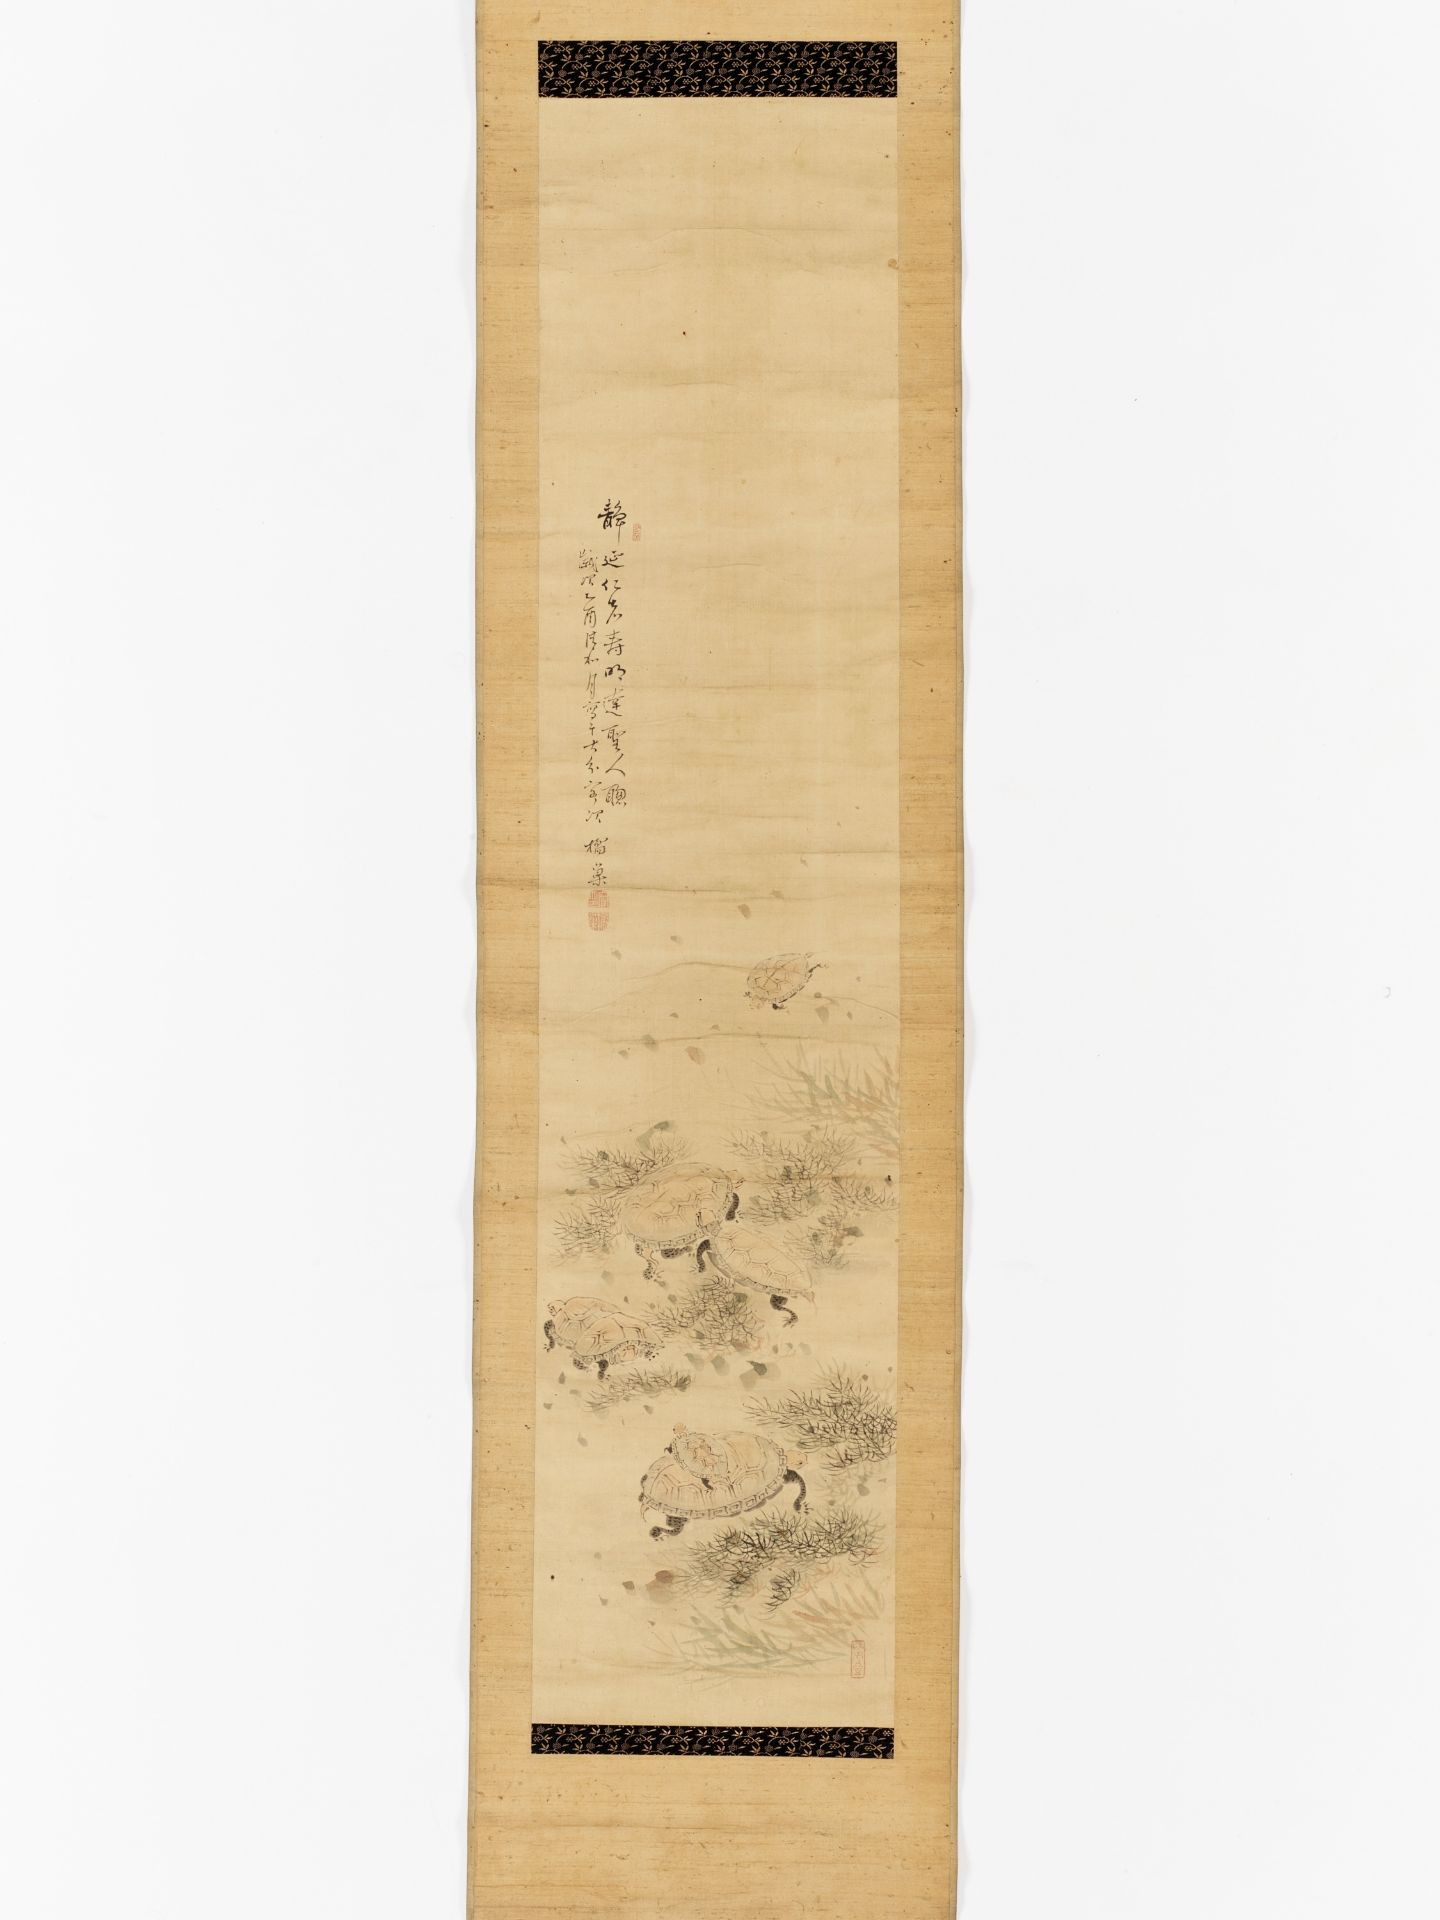 KISSO: A SCROLL PAINTING OF TURTLES - Image 2 of 6